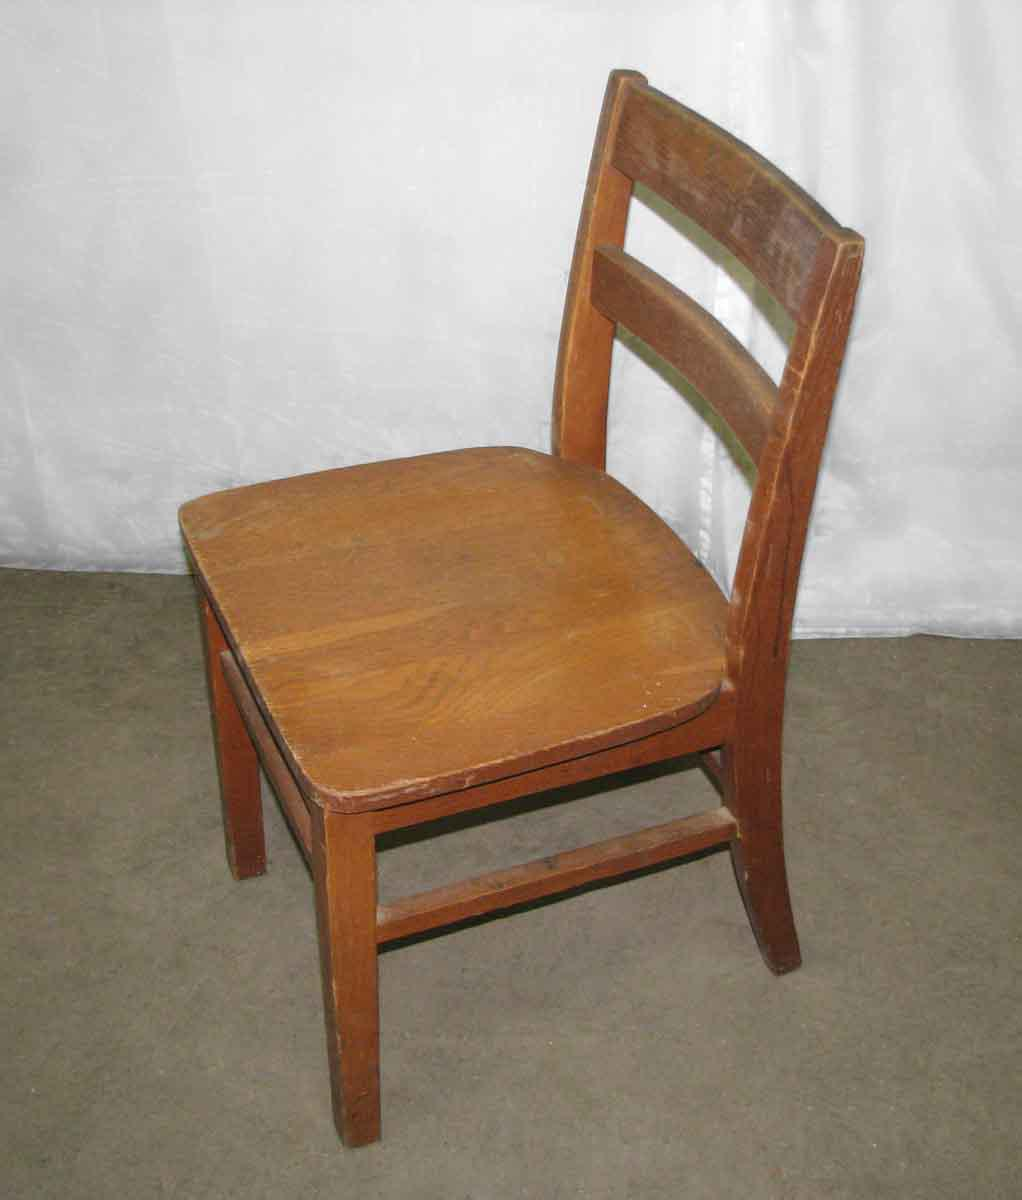 School chair back Back Side Old Maple Wooden Ladder Back School Chair For Sale Image Of City Home Old Maple Wooden Ladder Back School Chair Chairish